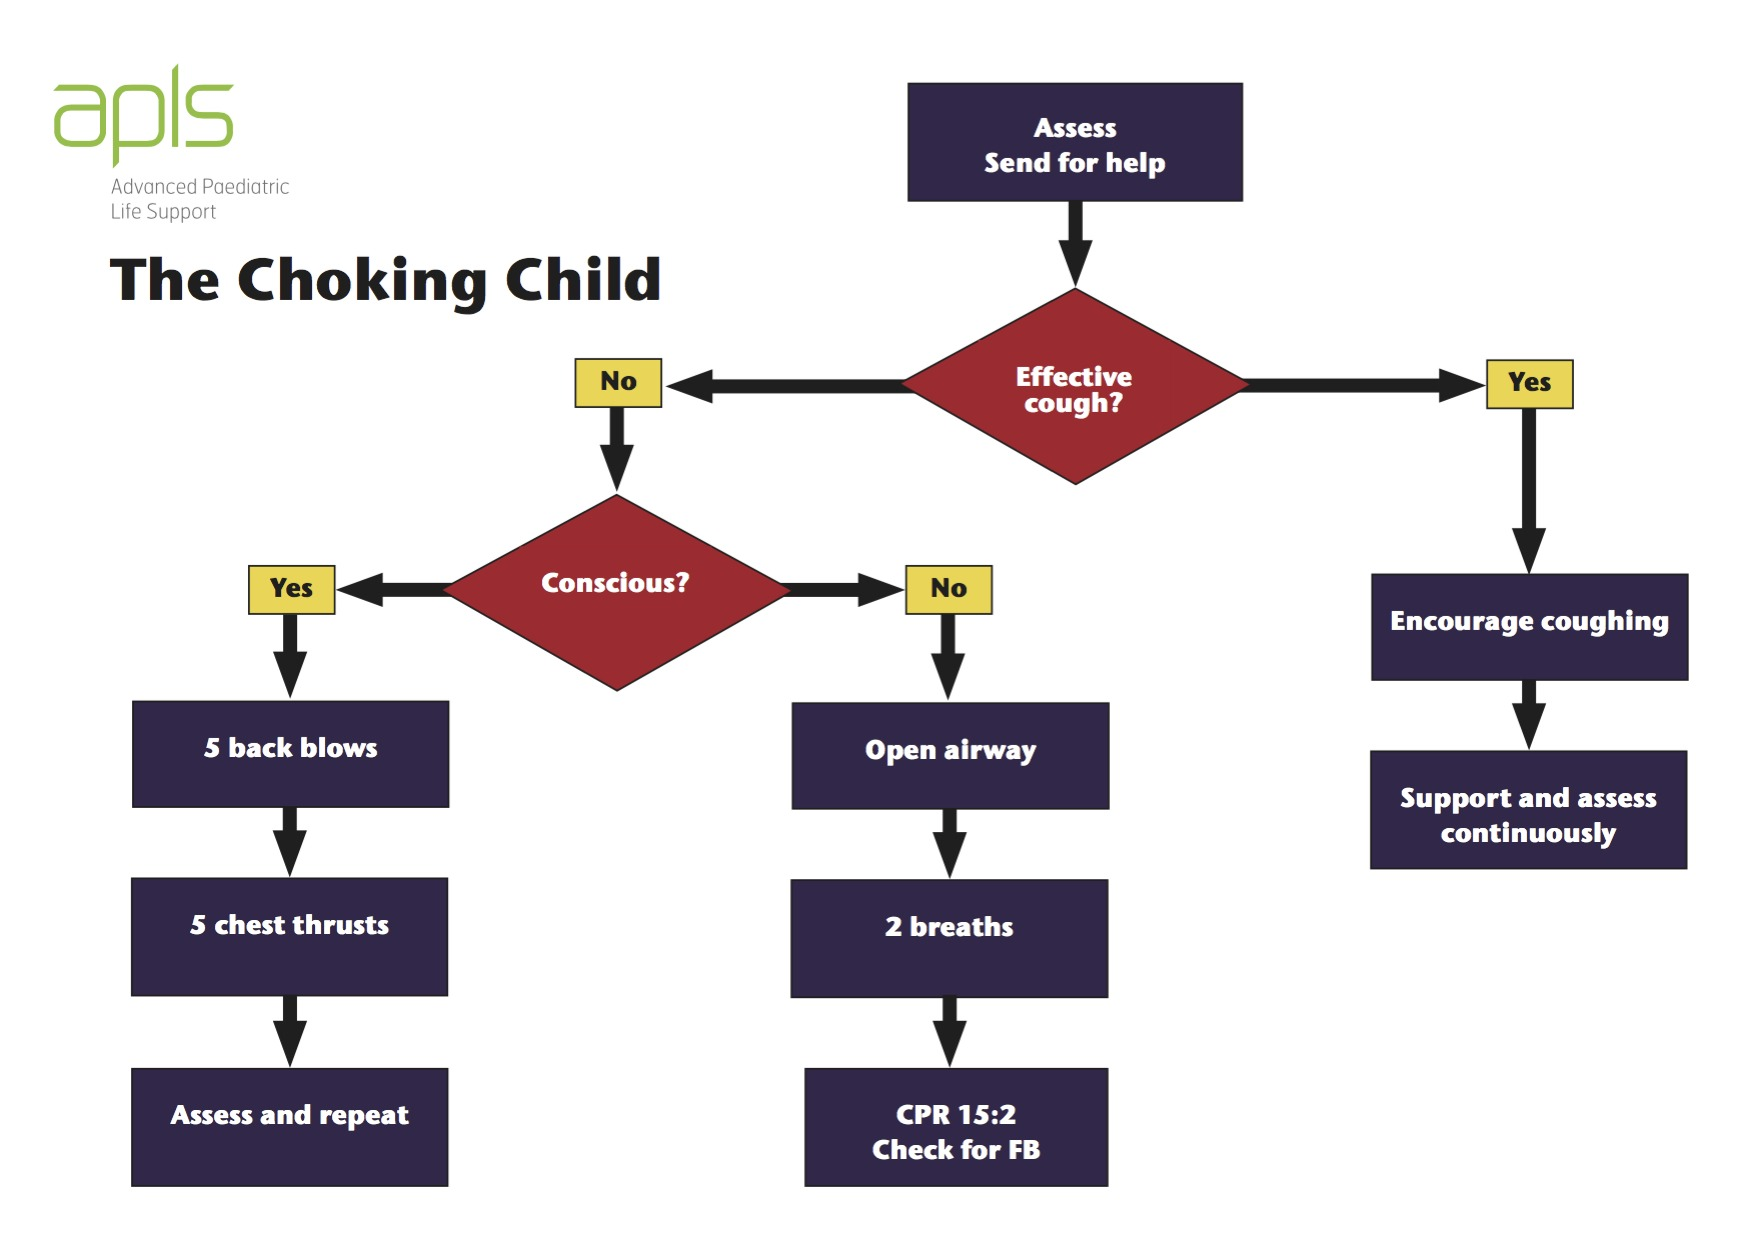 Foreign bodies in the body of a child. First aid